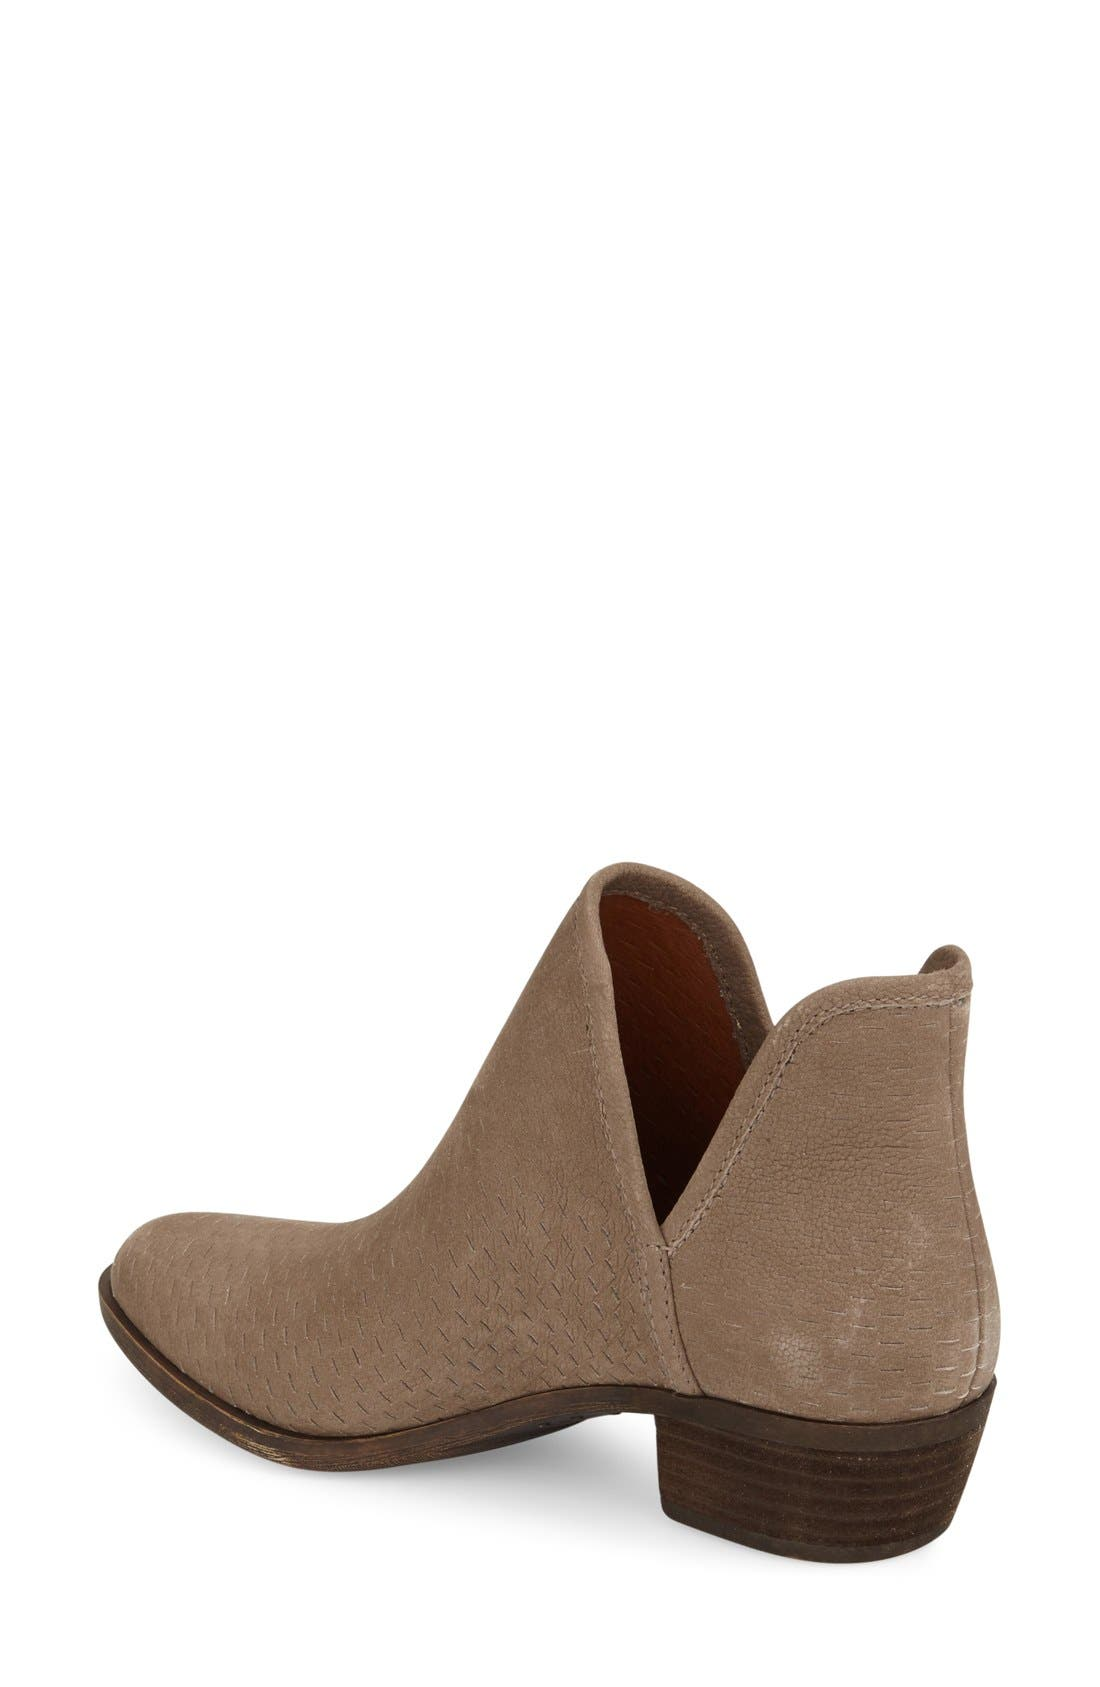 Alternate Image 2  - Lucky Brand 'Bashina' Perforated Bootie (Women)